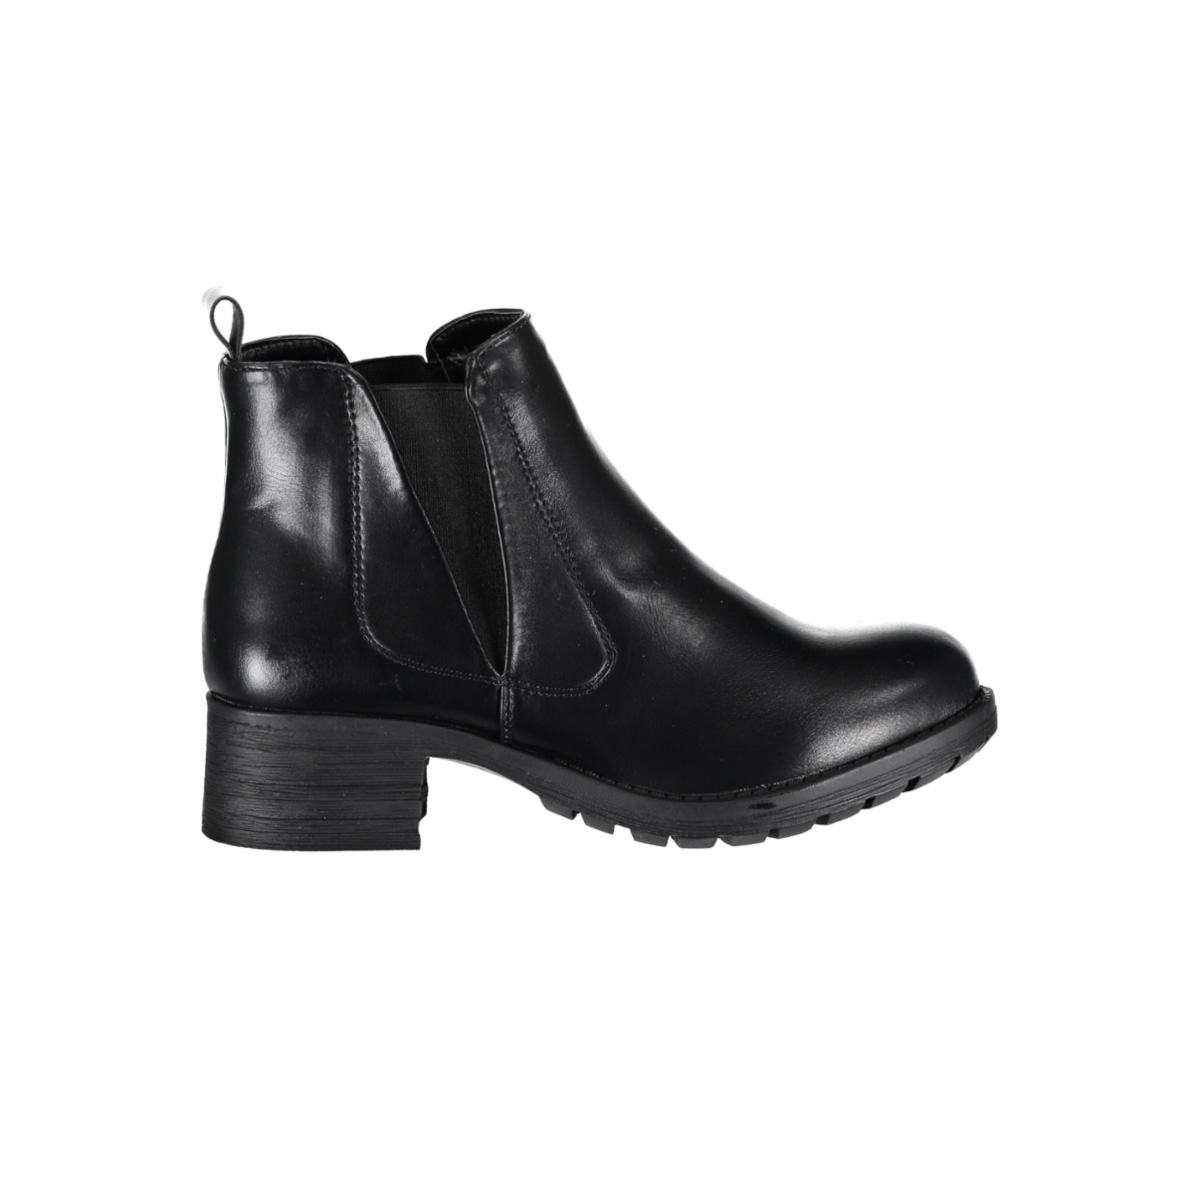 pspixeil boot black 17083822 pieces schoen black